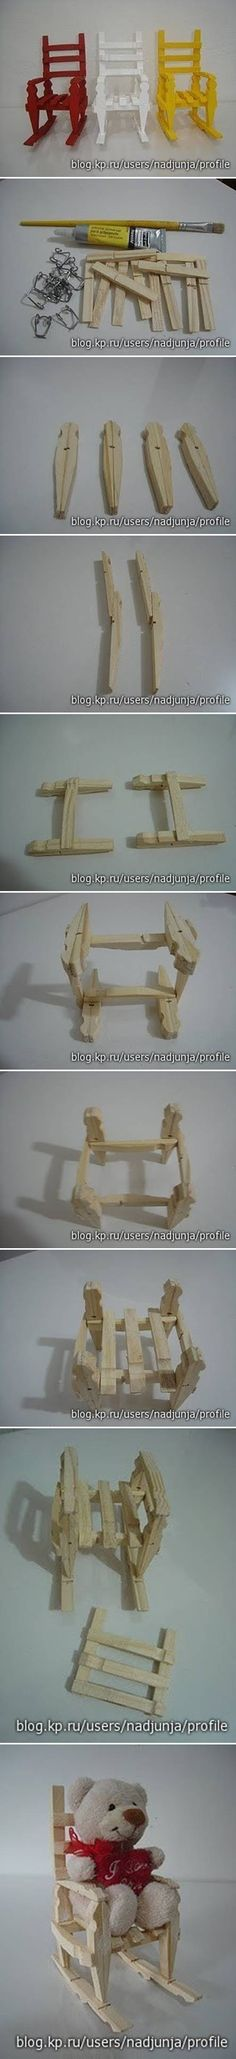 DIY Clothespin Rocking Chair